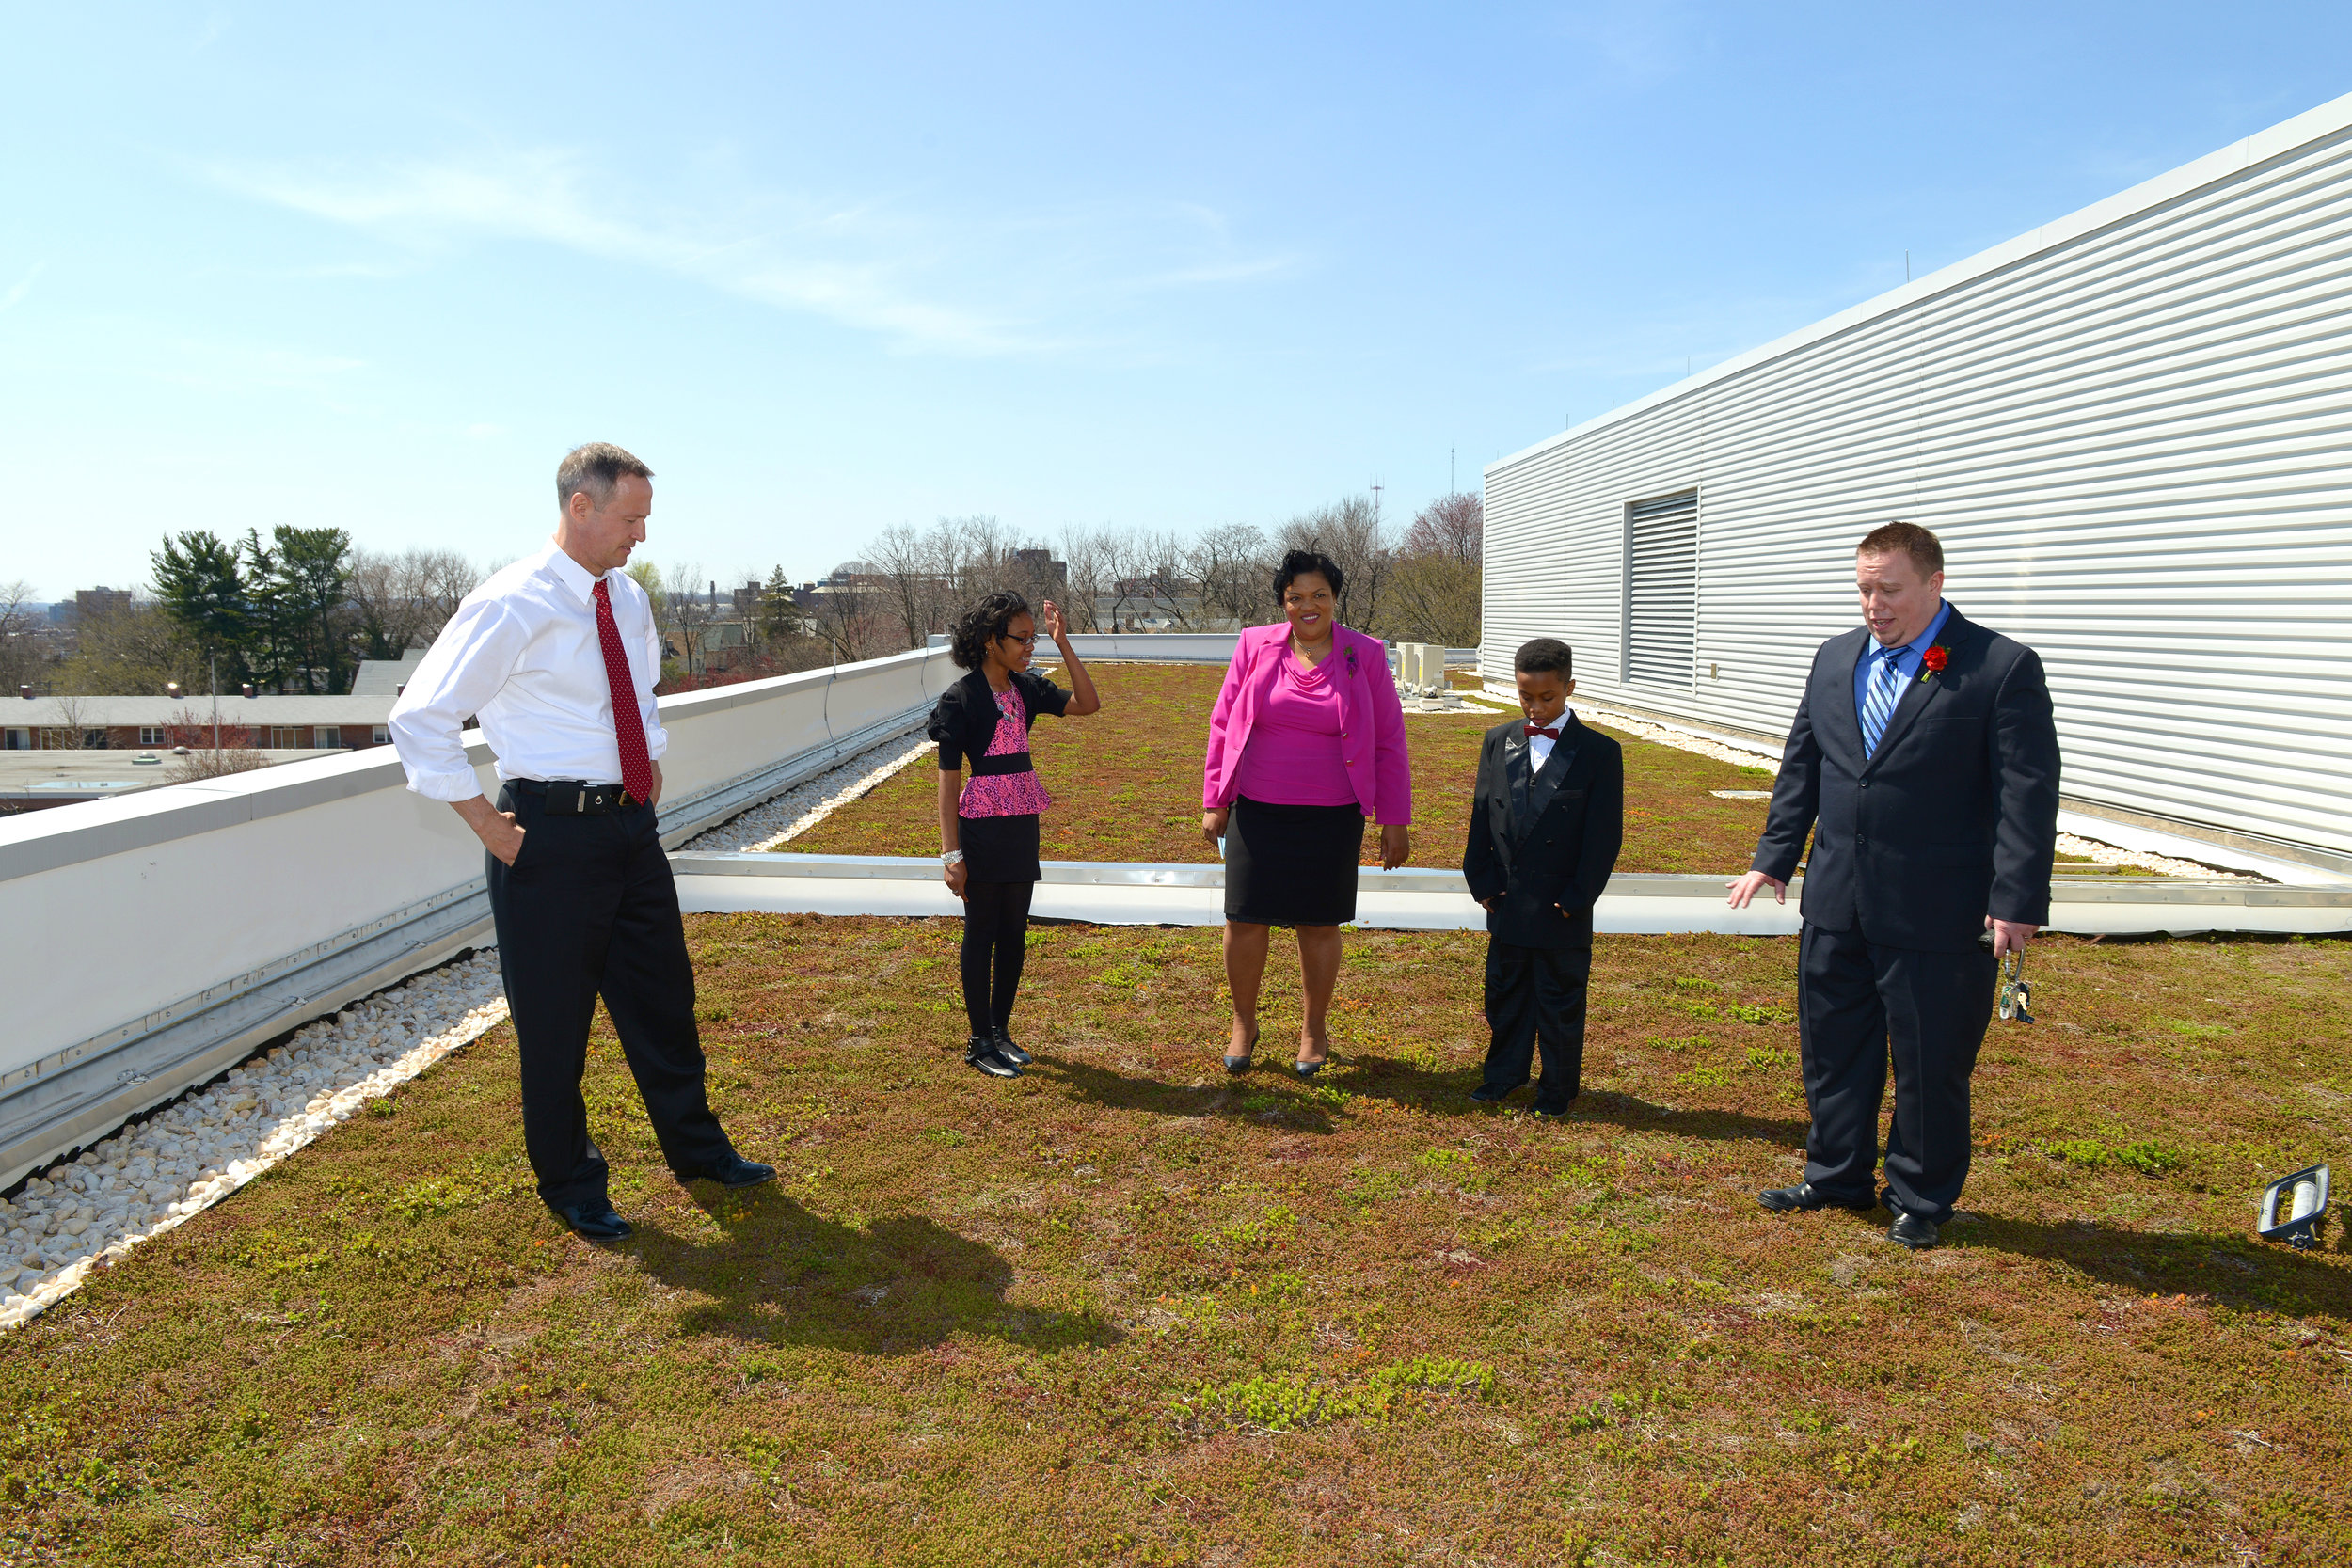 Former Maryland Governor Martin O'Malley tours a green roof in Maryland. Photo by Tom Nappi.